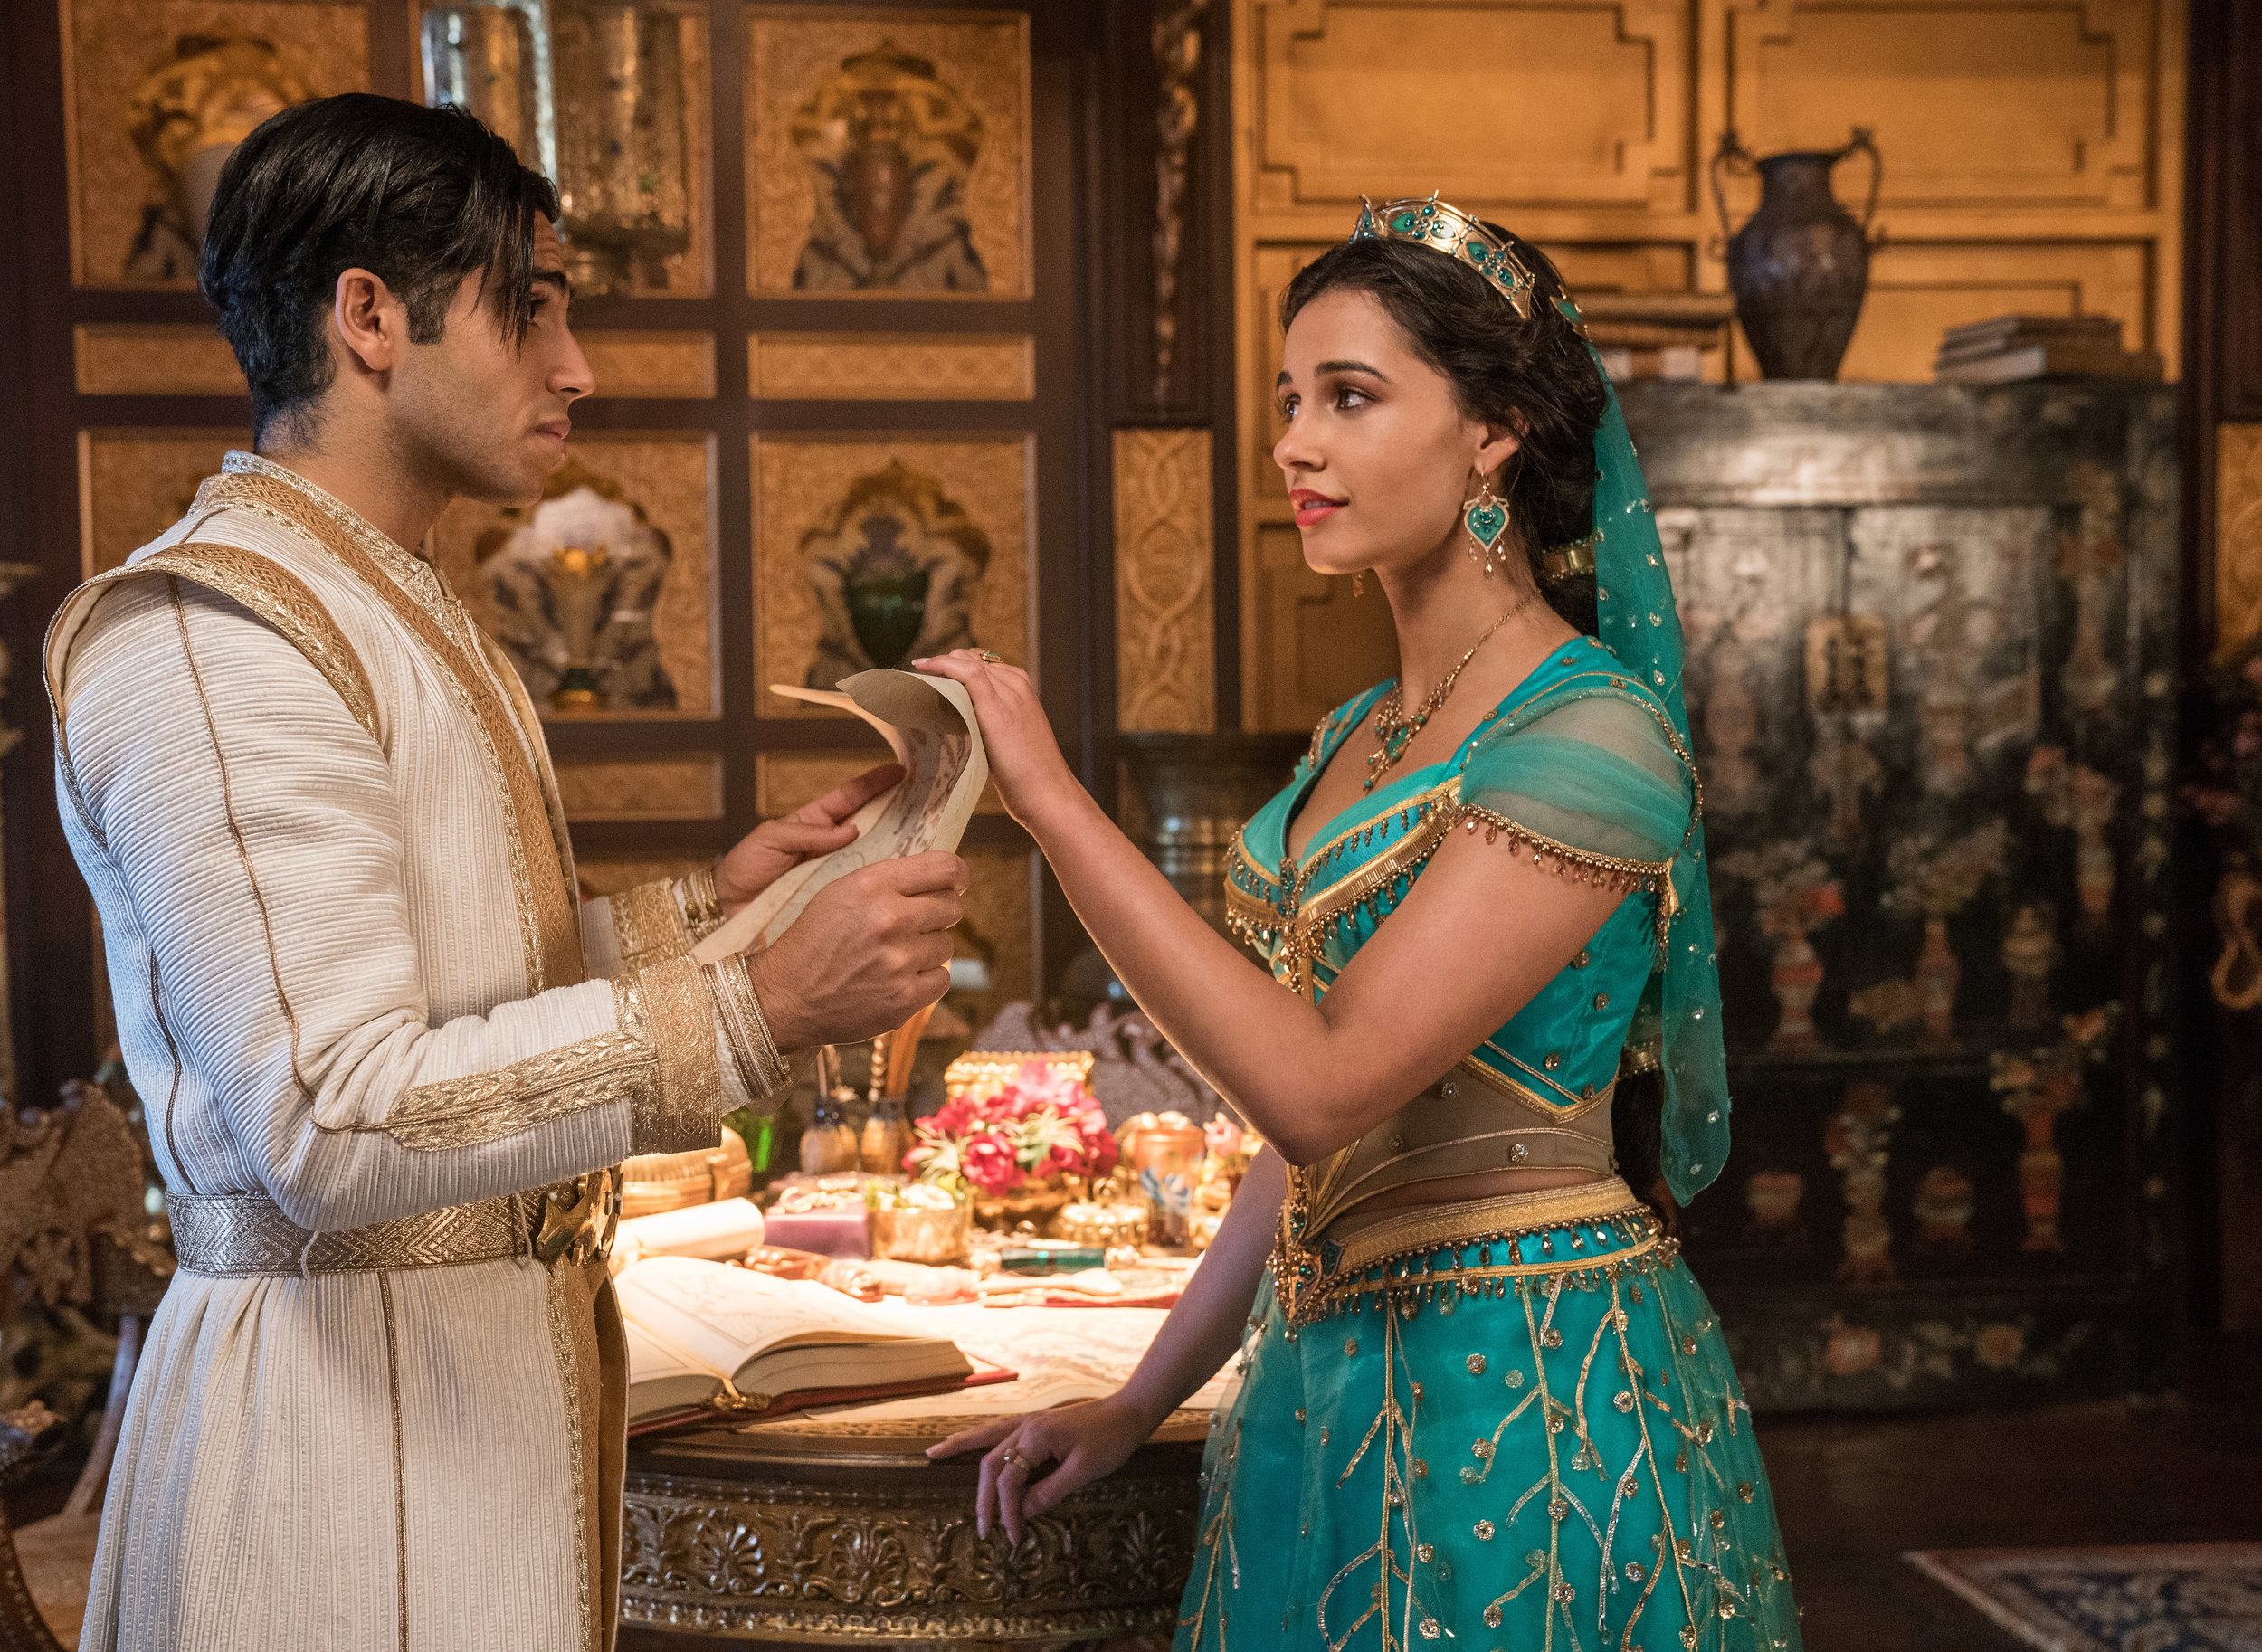 Mena Massoud and Naomi Scott take it a little slower in Disney's live-action Aladdin